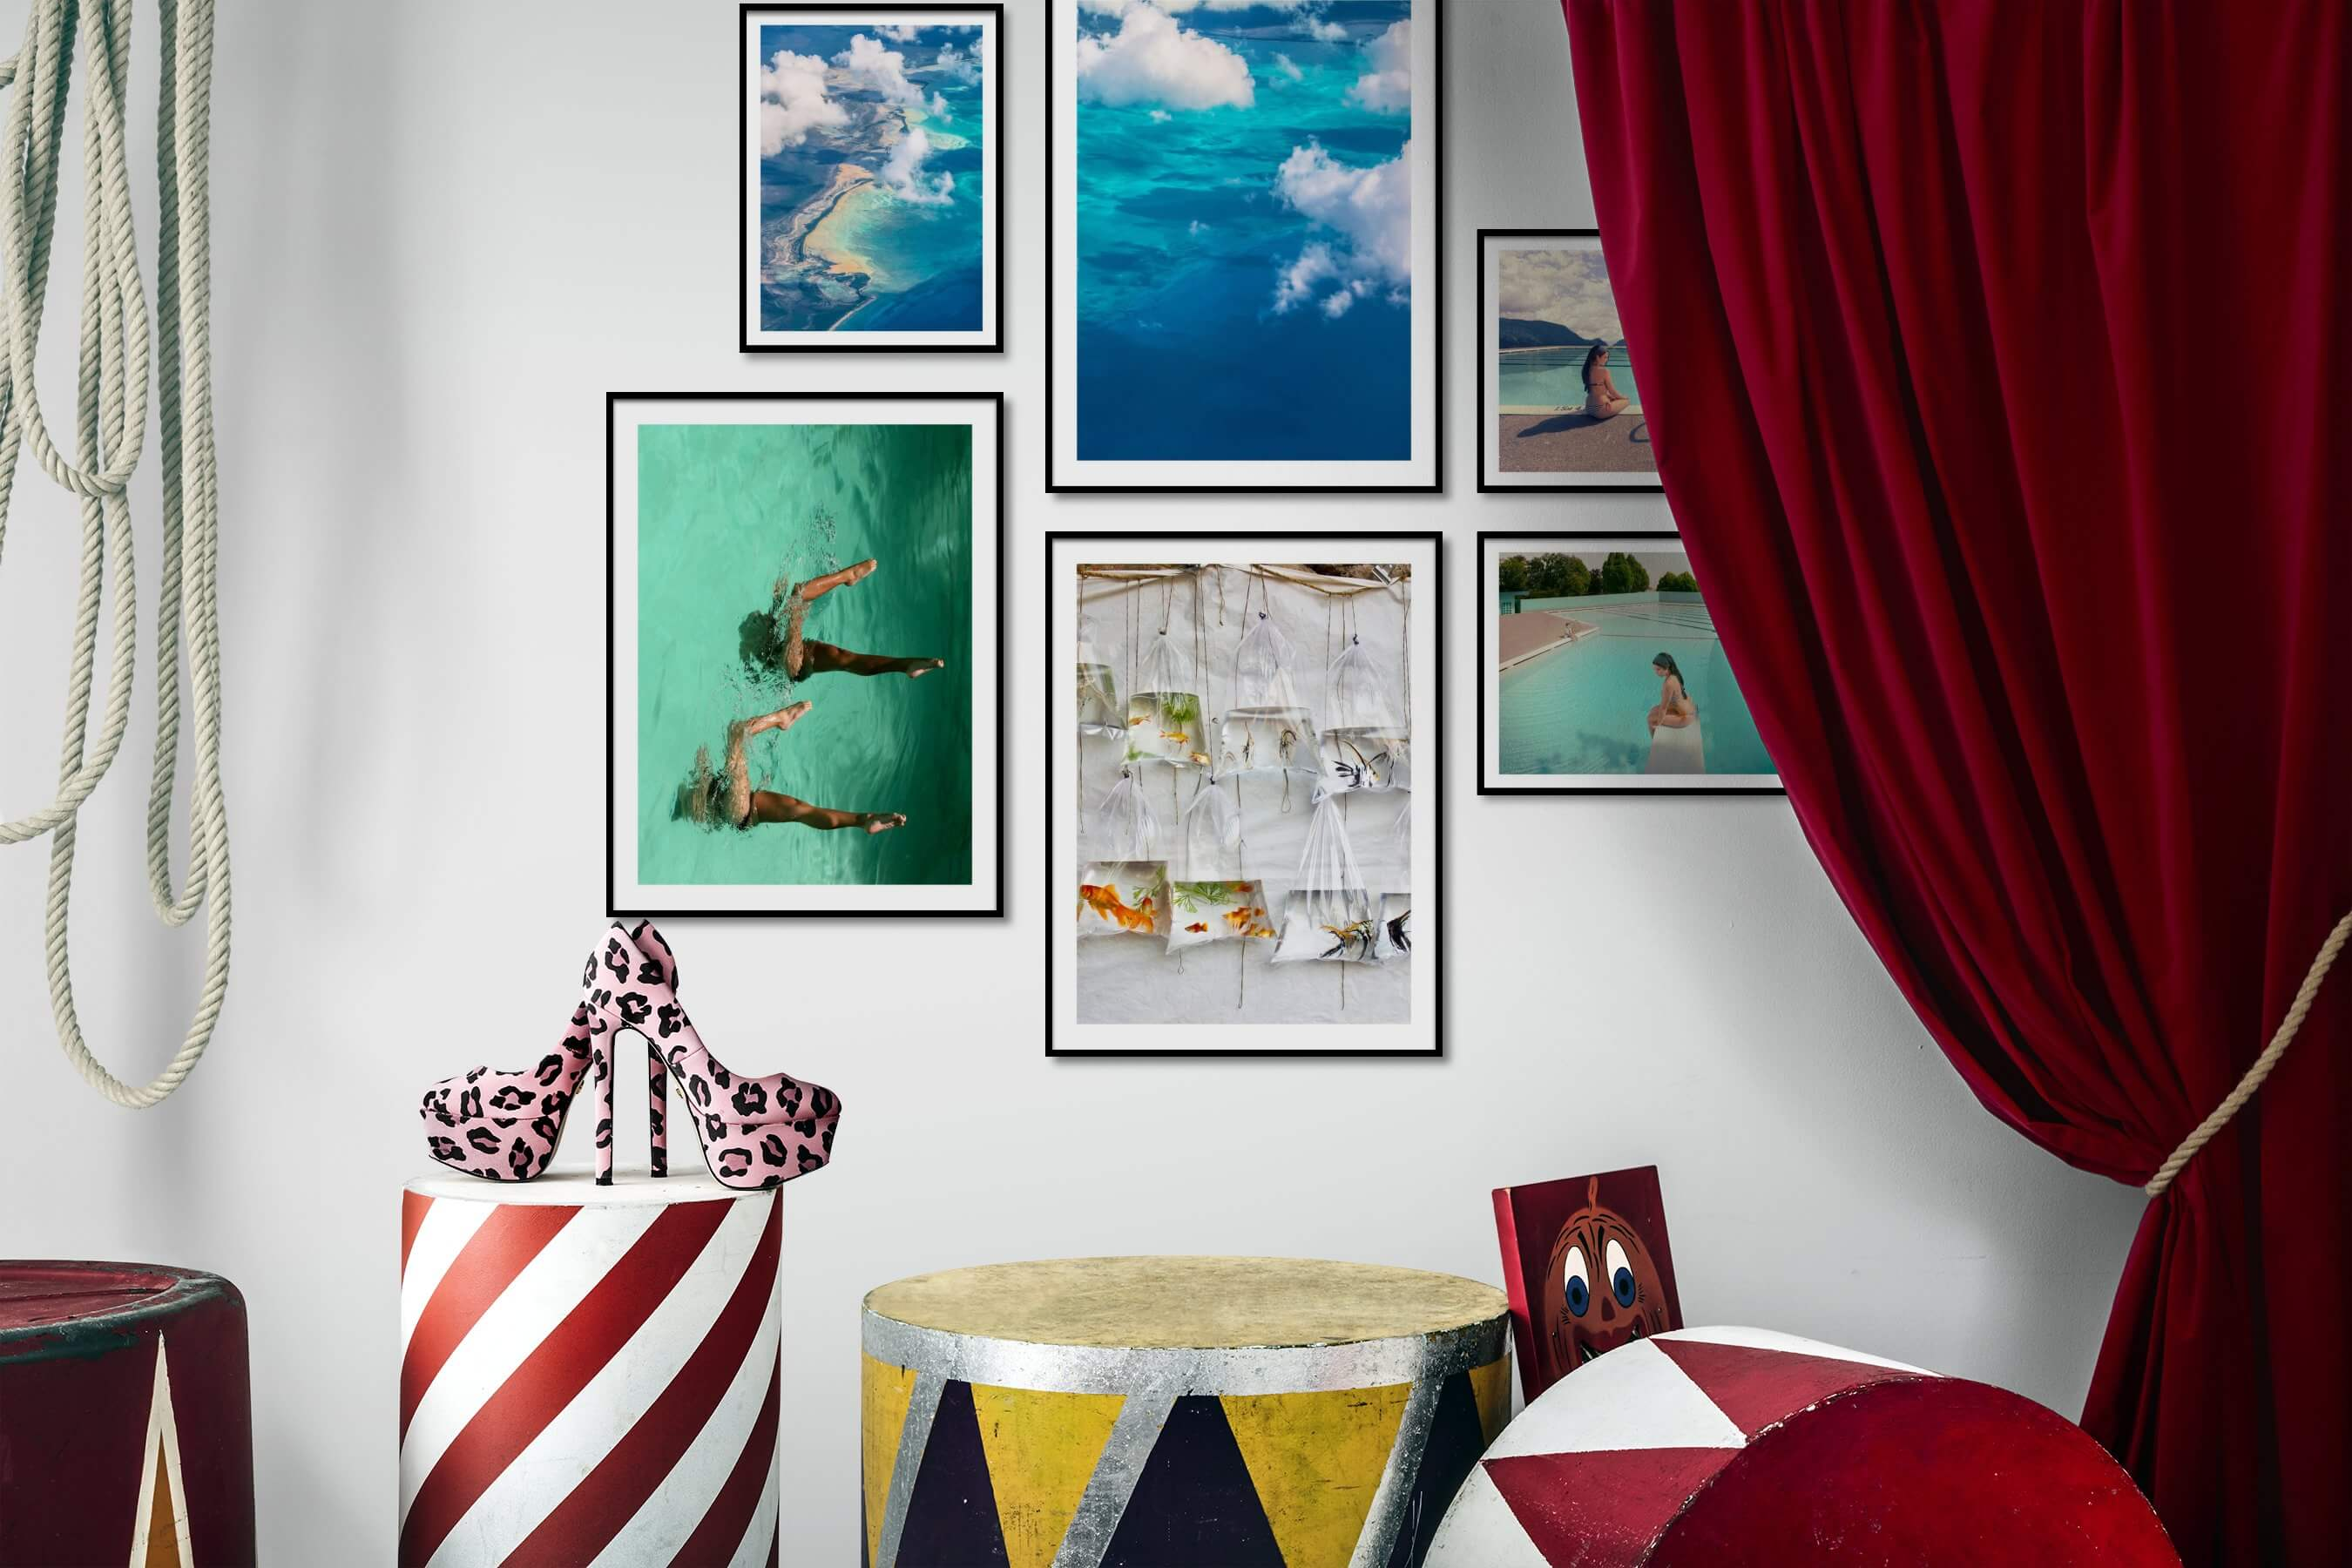 Gallery wall idea with six framed pictures arranged on a wall depicting For the Moderate, Nature, Beach & Water, Mindfulness, For the Minimalist, Animals, and Vintage